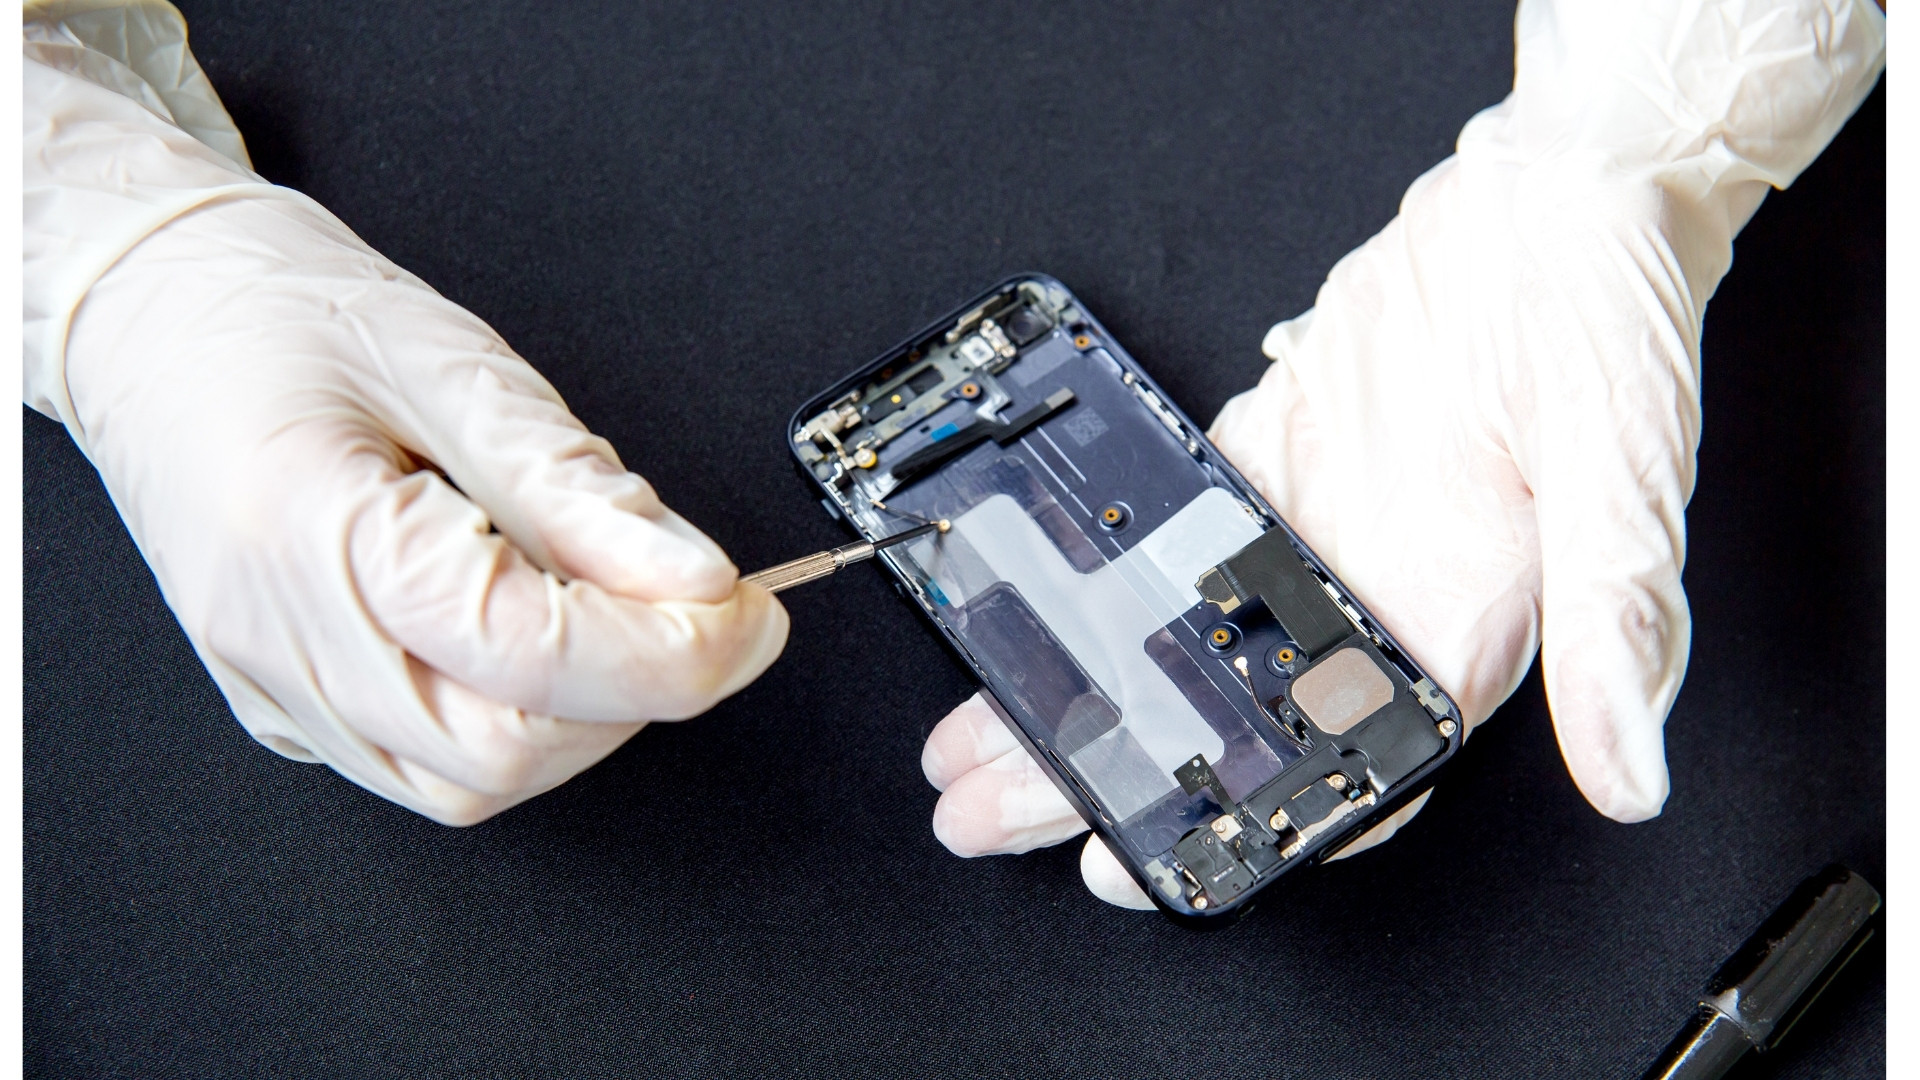 Cell Phone Repairs in 30 Minutes